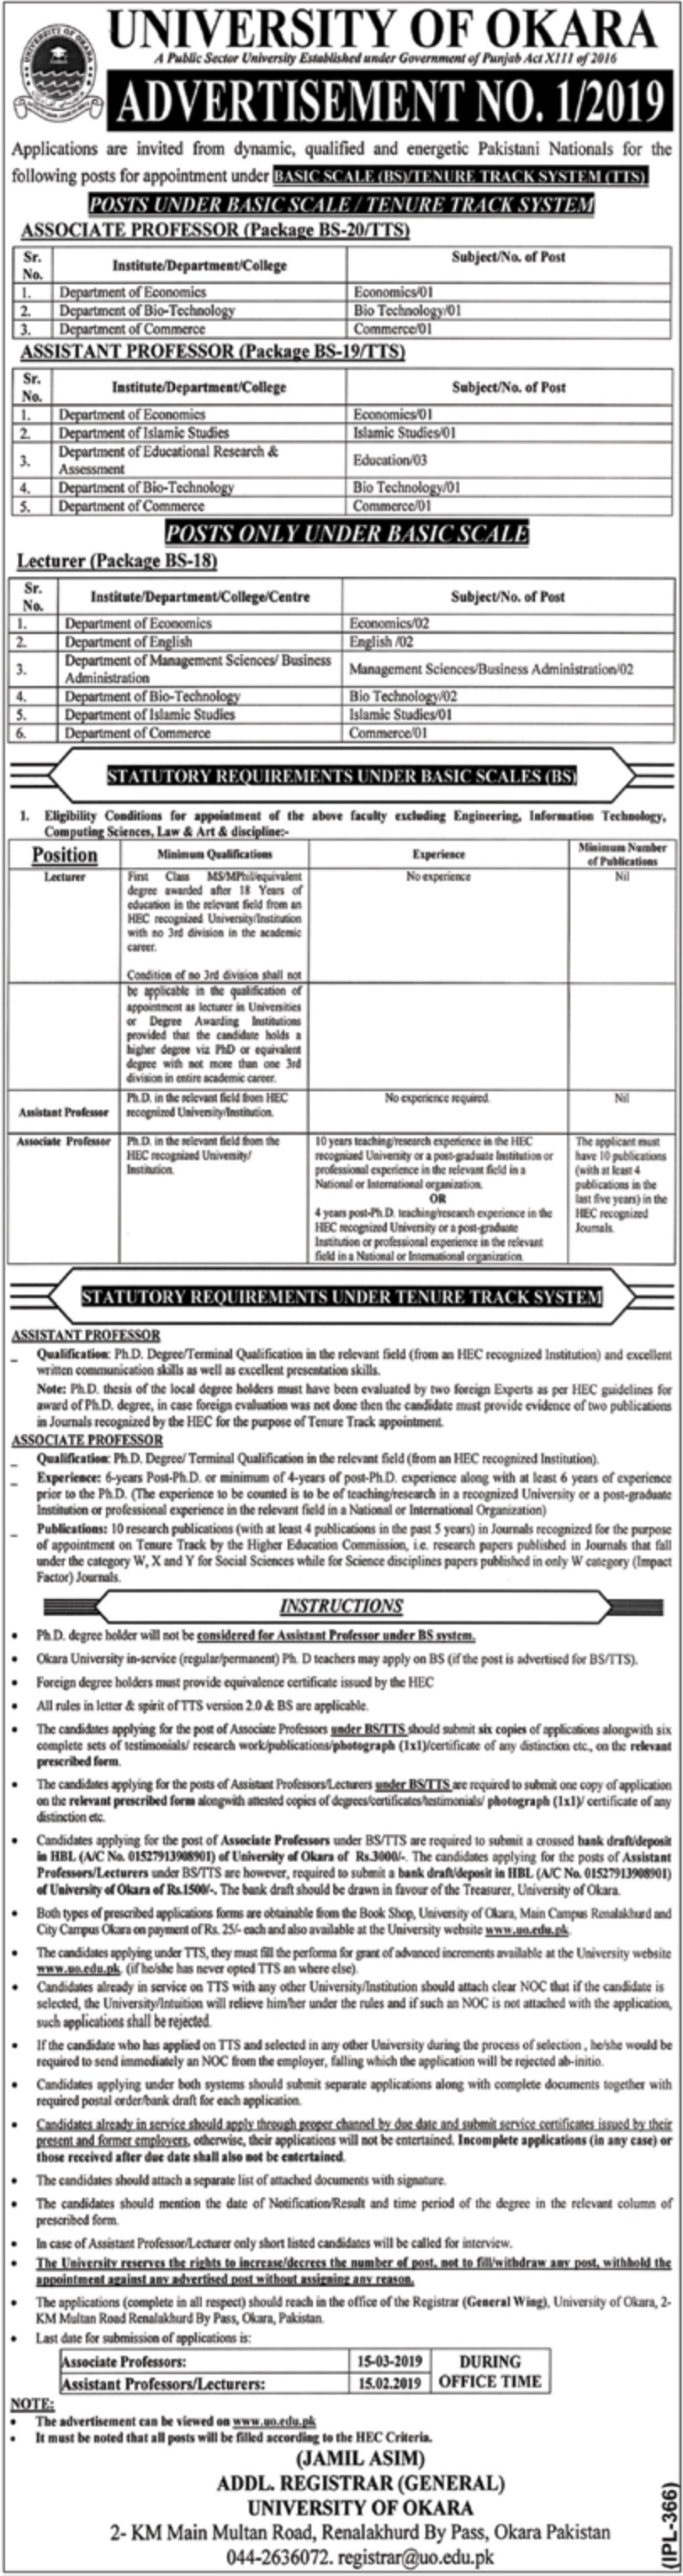 University of Okara Jobs 2019 Pakistan Latest